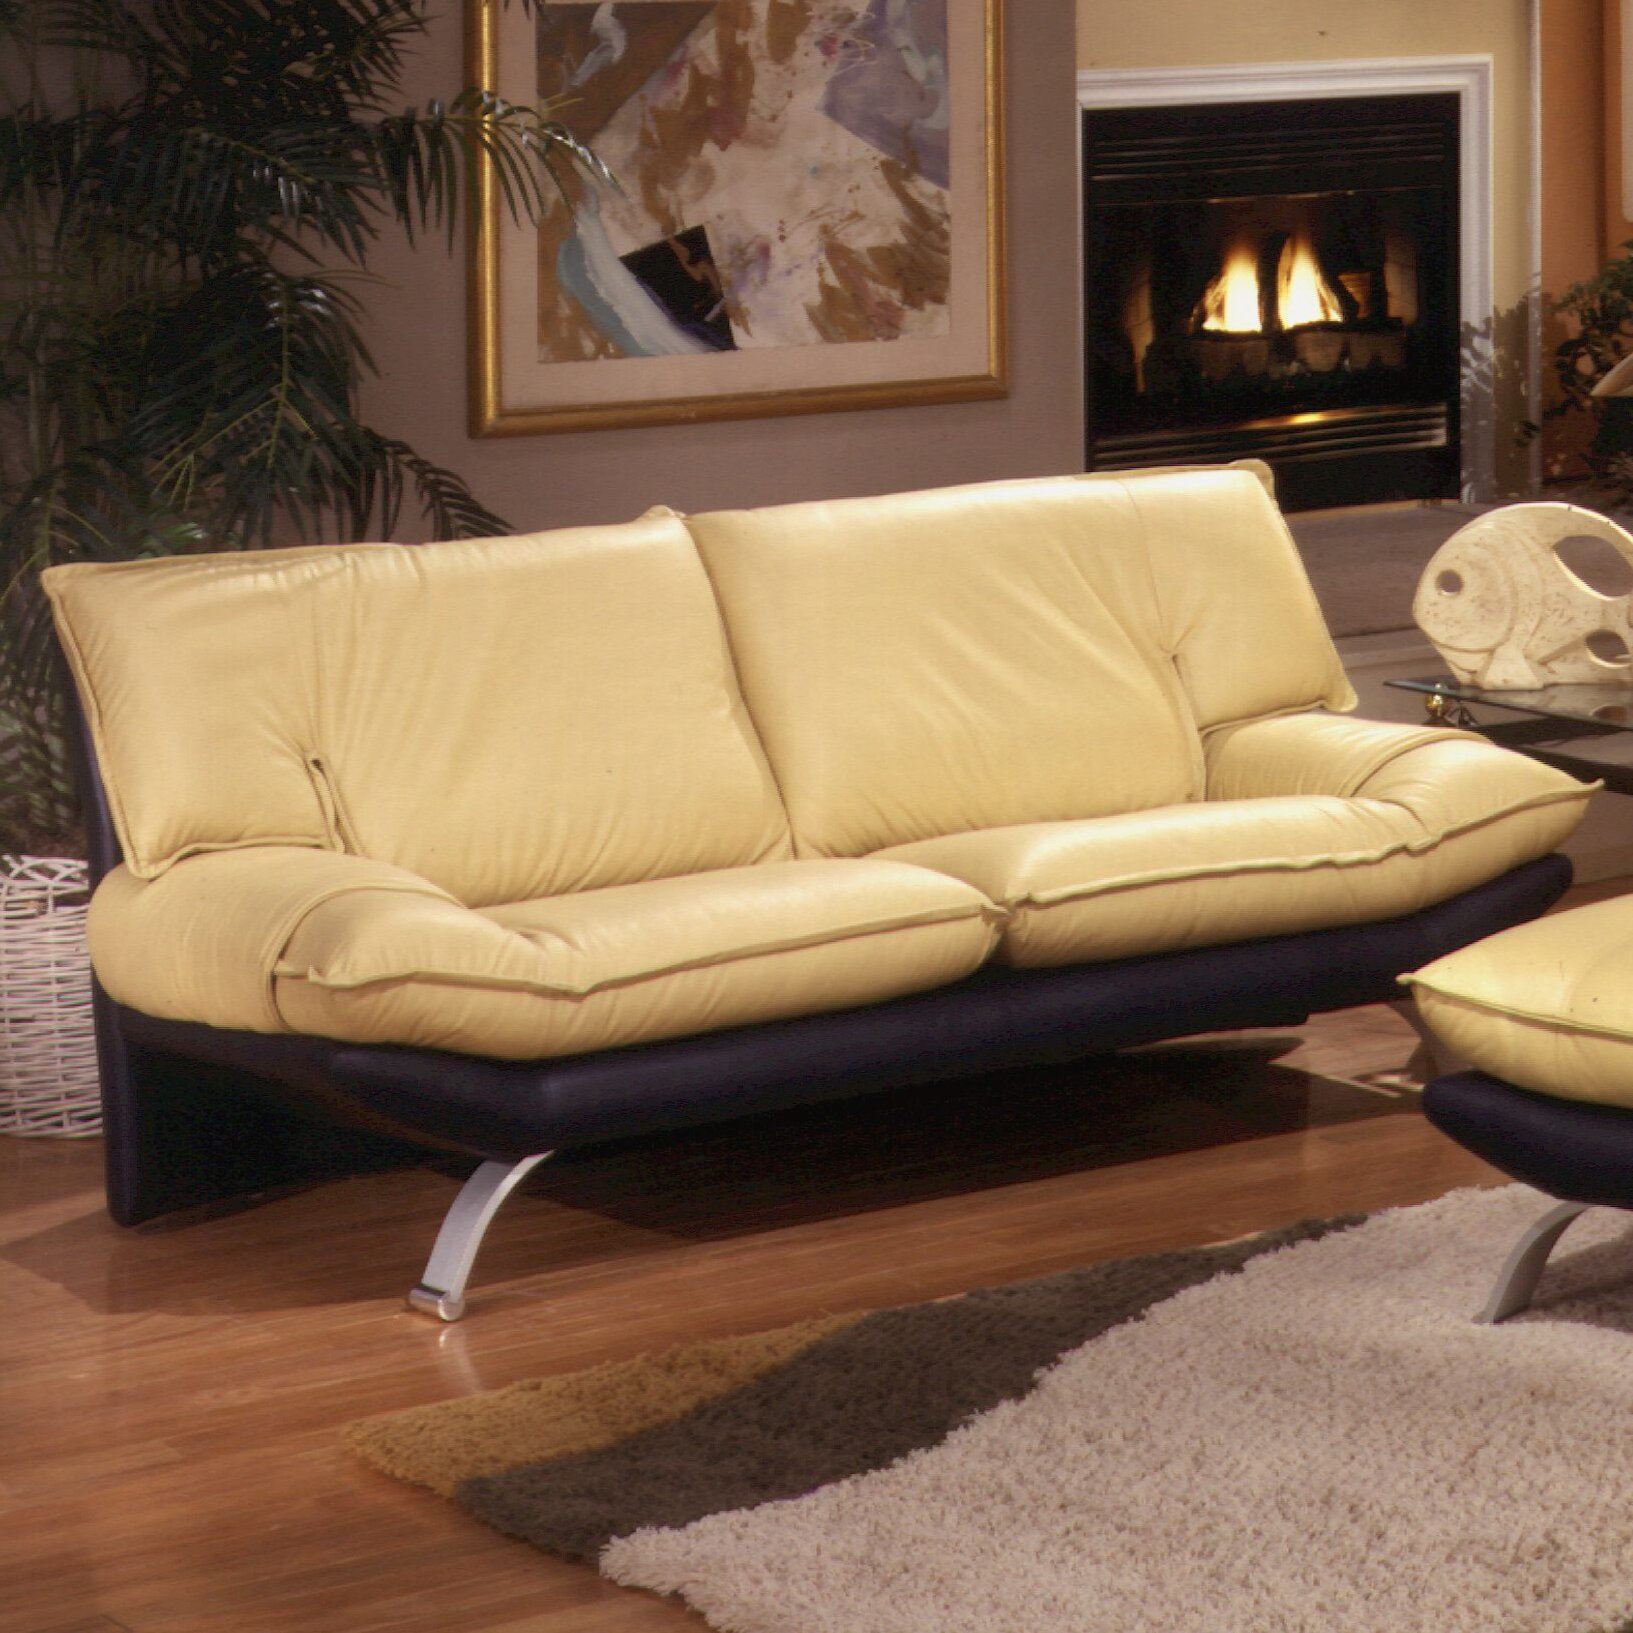 Omnia leather princeton leather living room set reviews for Wg r living room sets